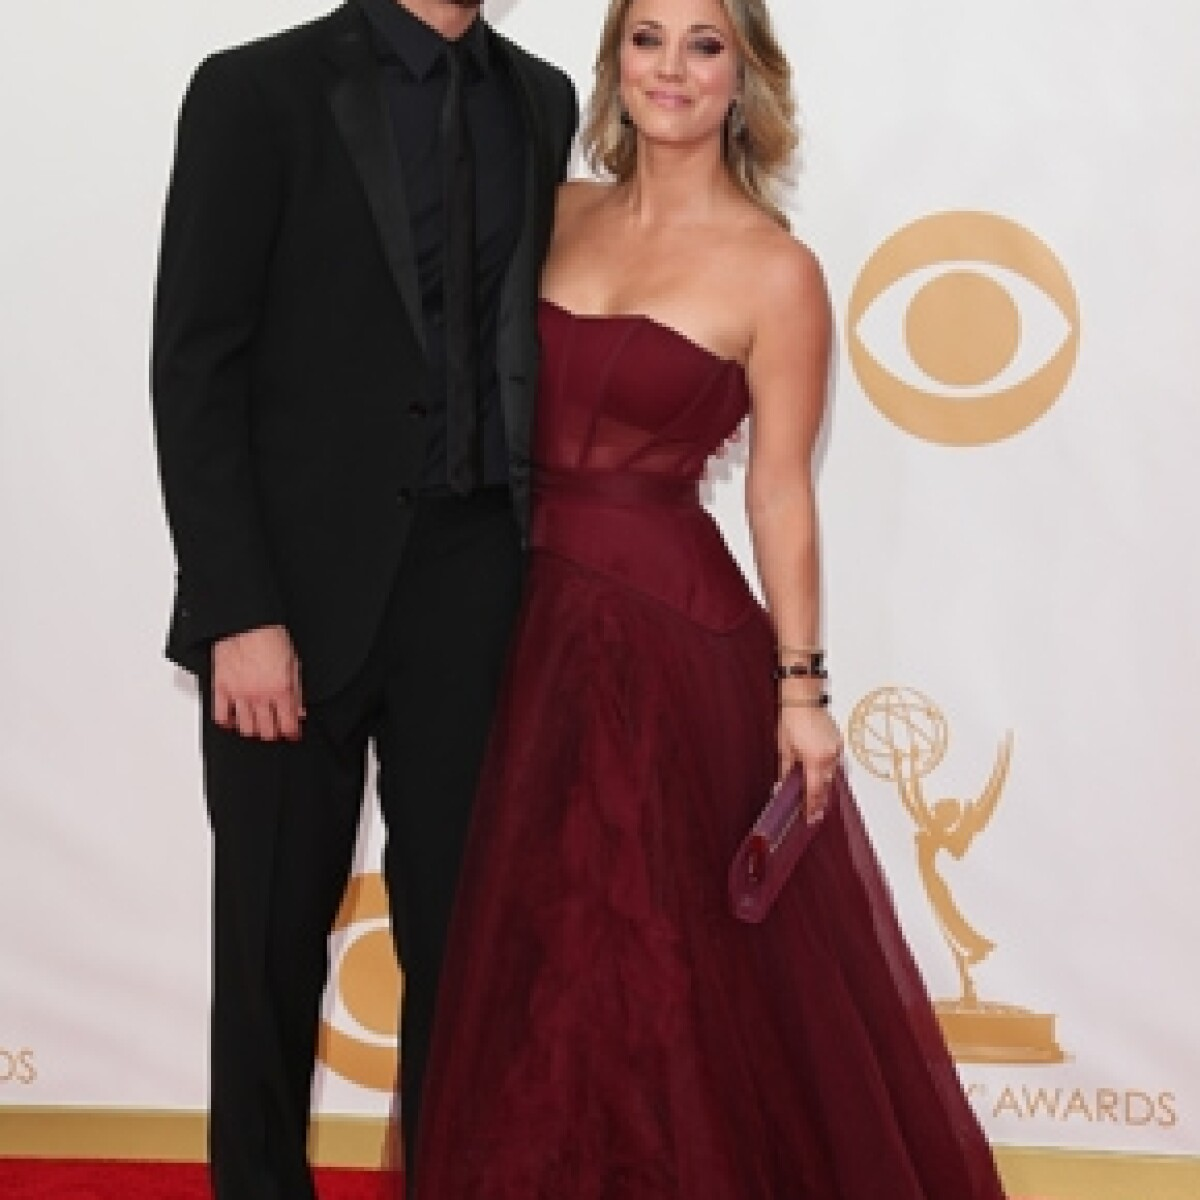 Kaley Cuoco se compromete con Ryan Sweeting